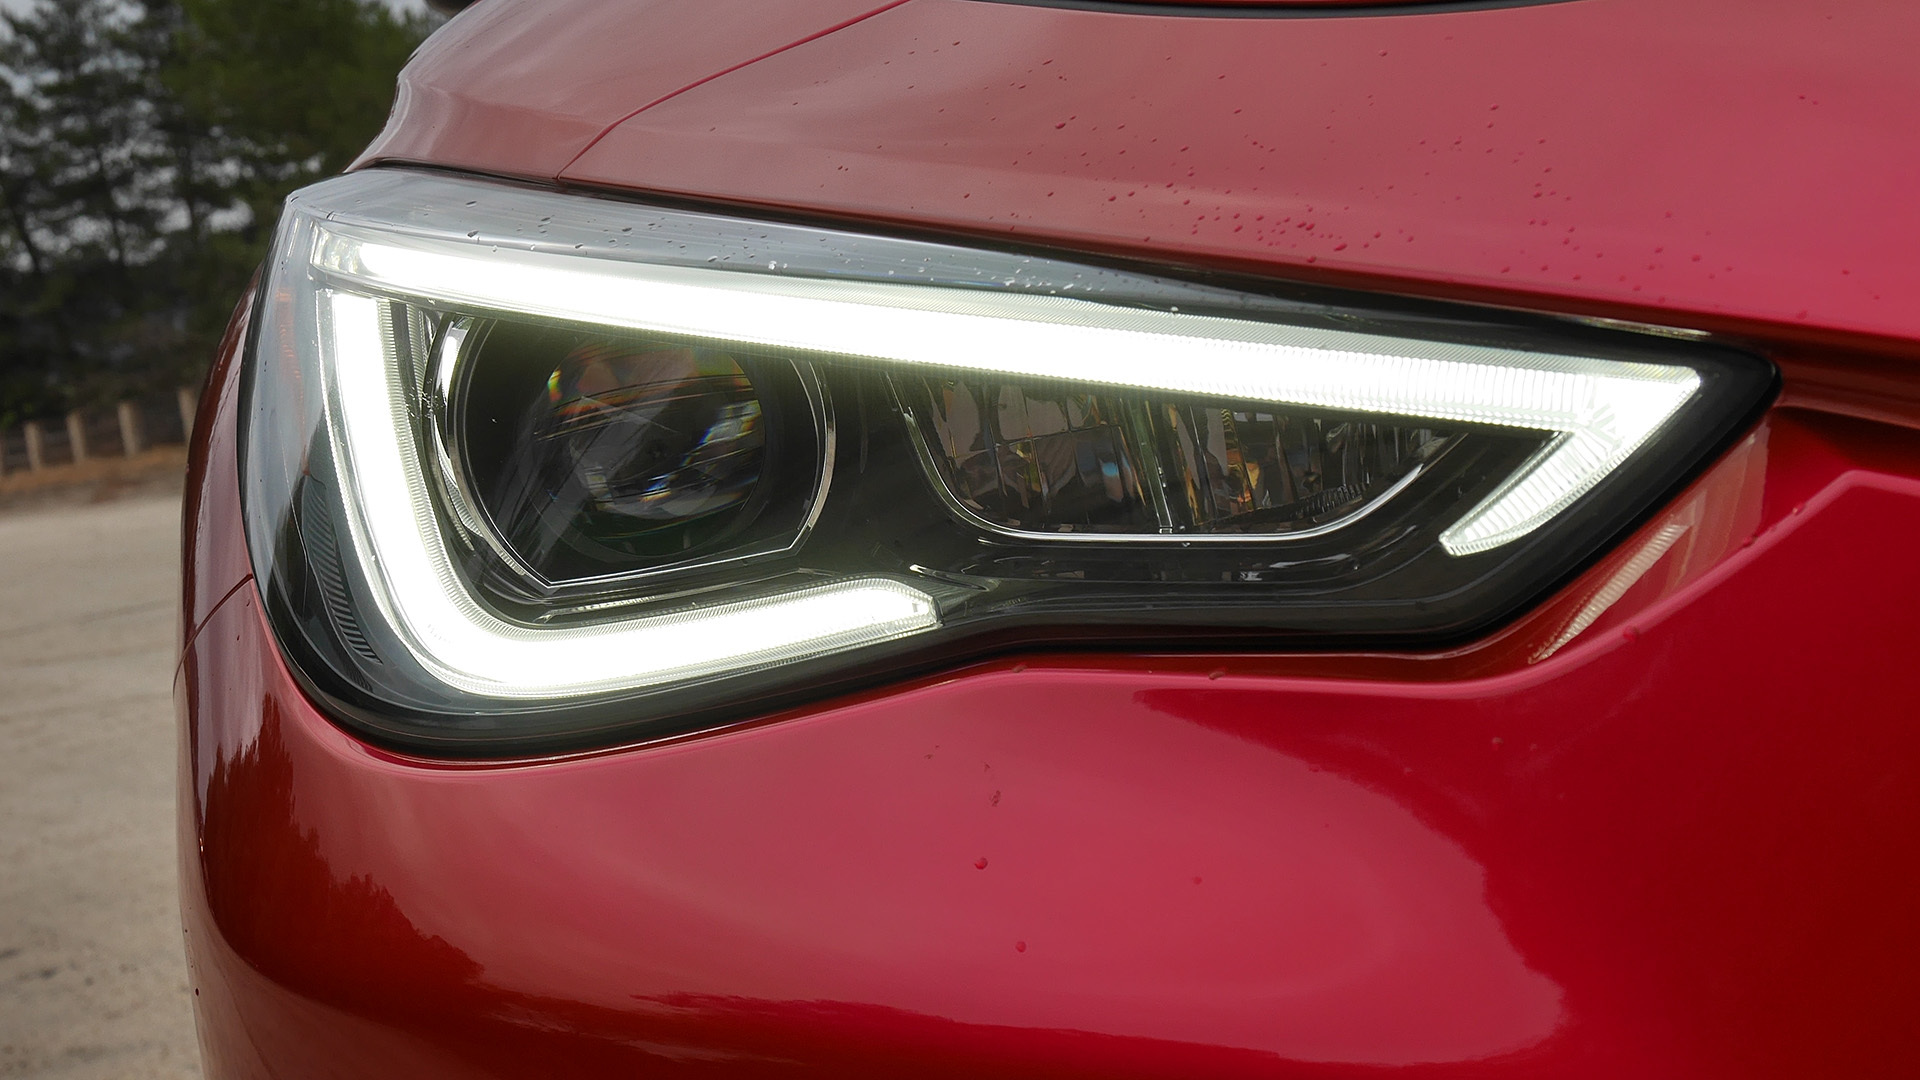 2017 Infiniti Q60 Red Exterior View Headlight (Photo 21 of 32)